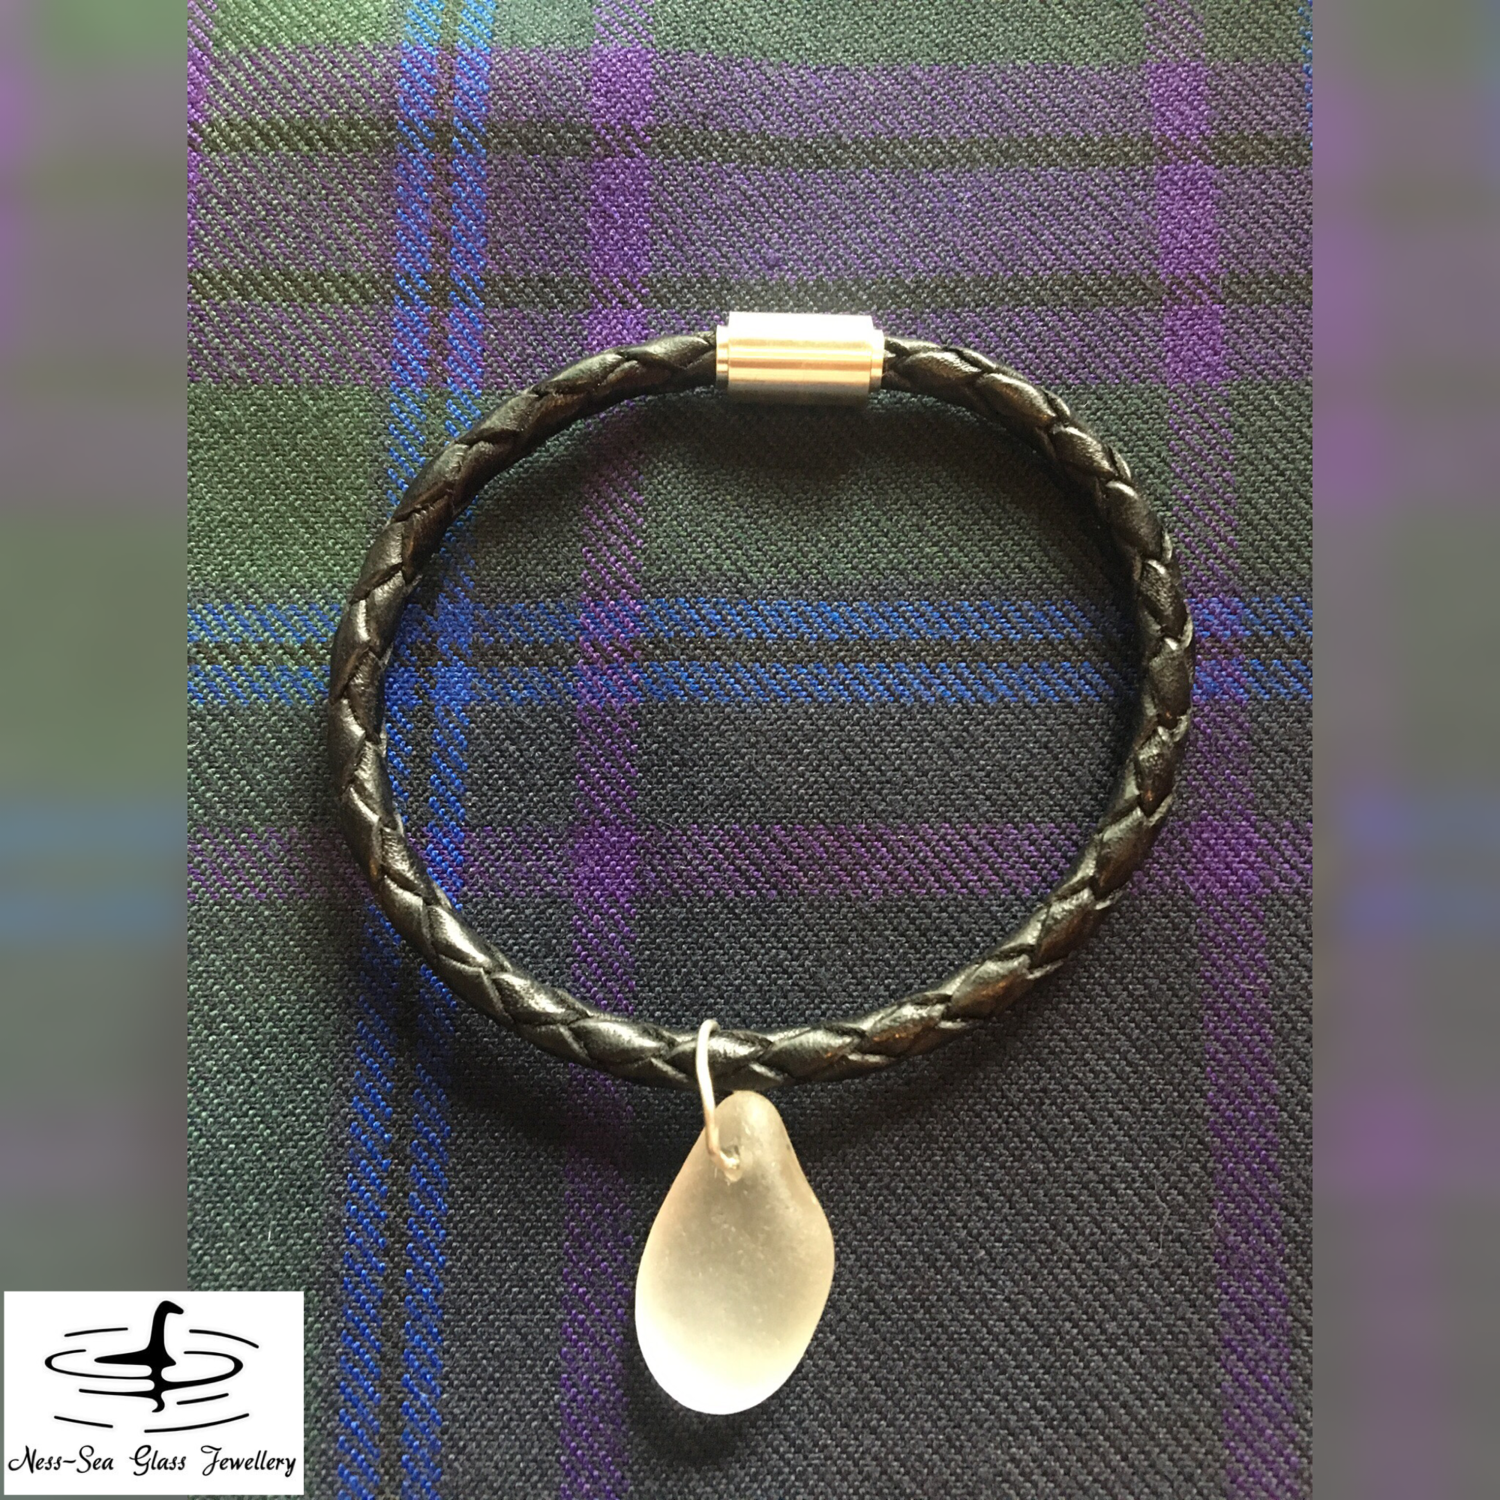 Clear Loch Ness Sea Glass Braided Leather Magnetic Clasp Bracelet